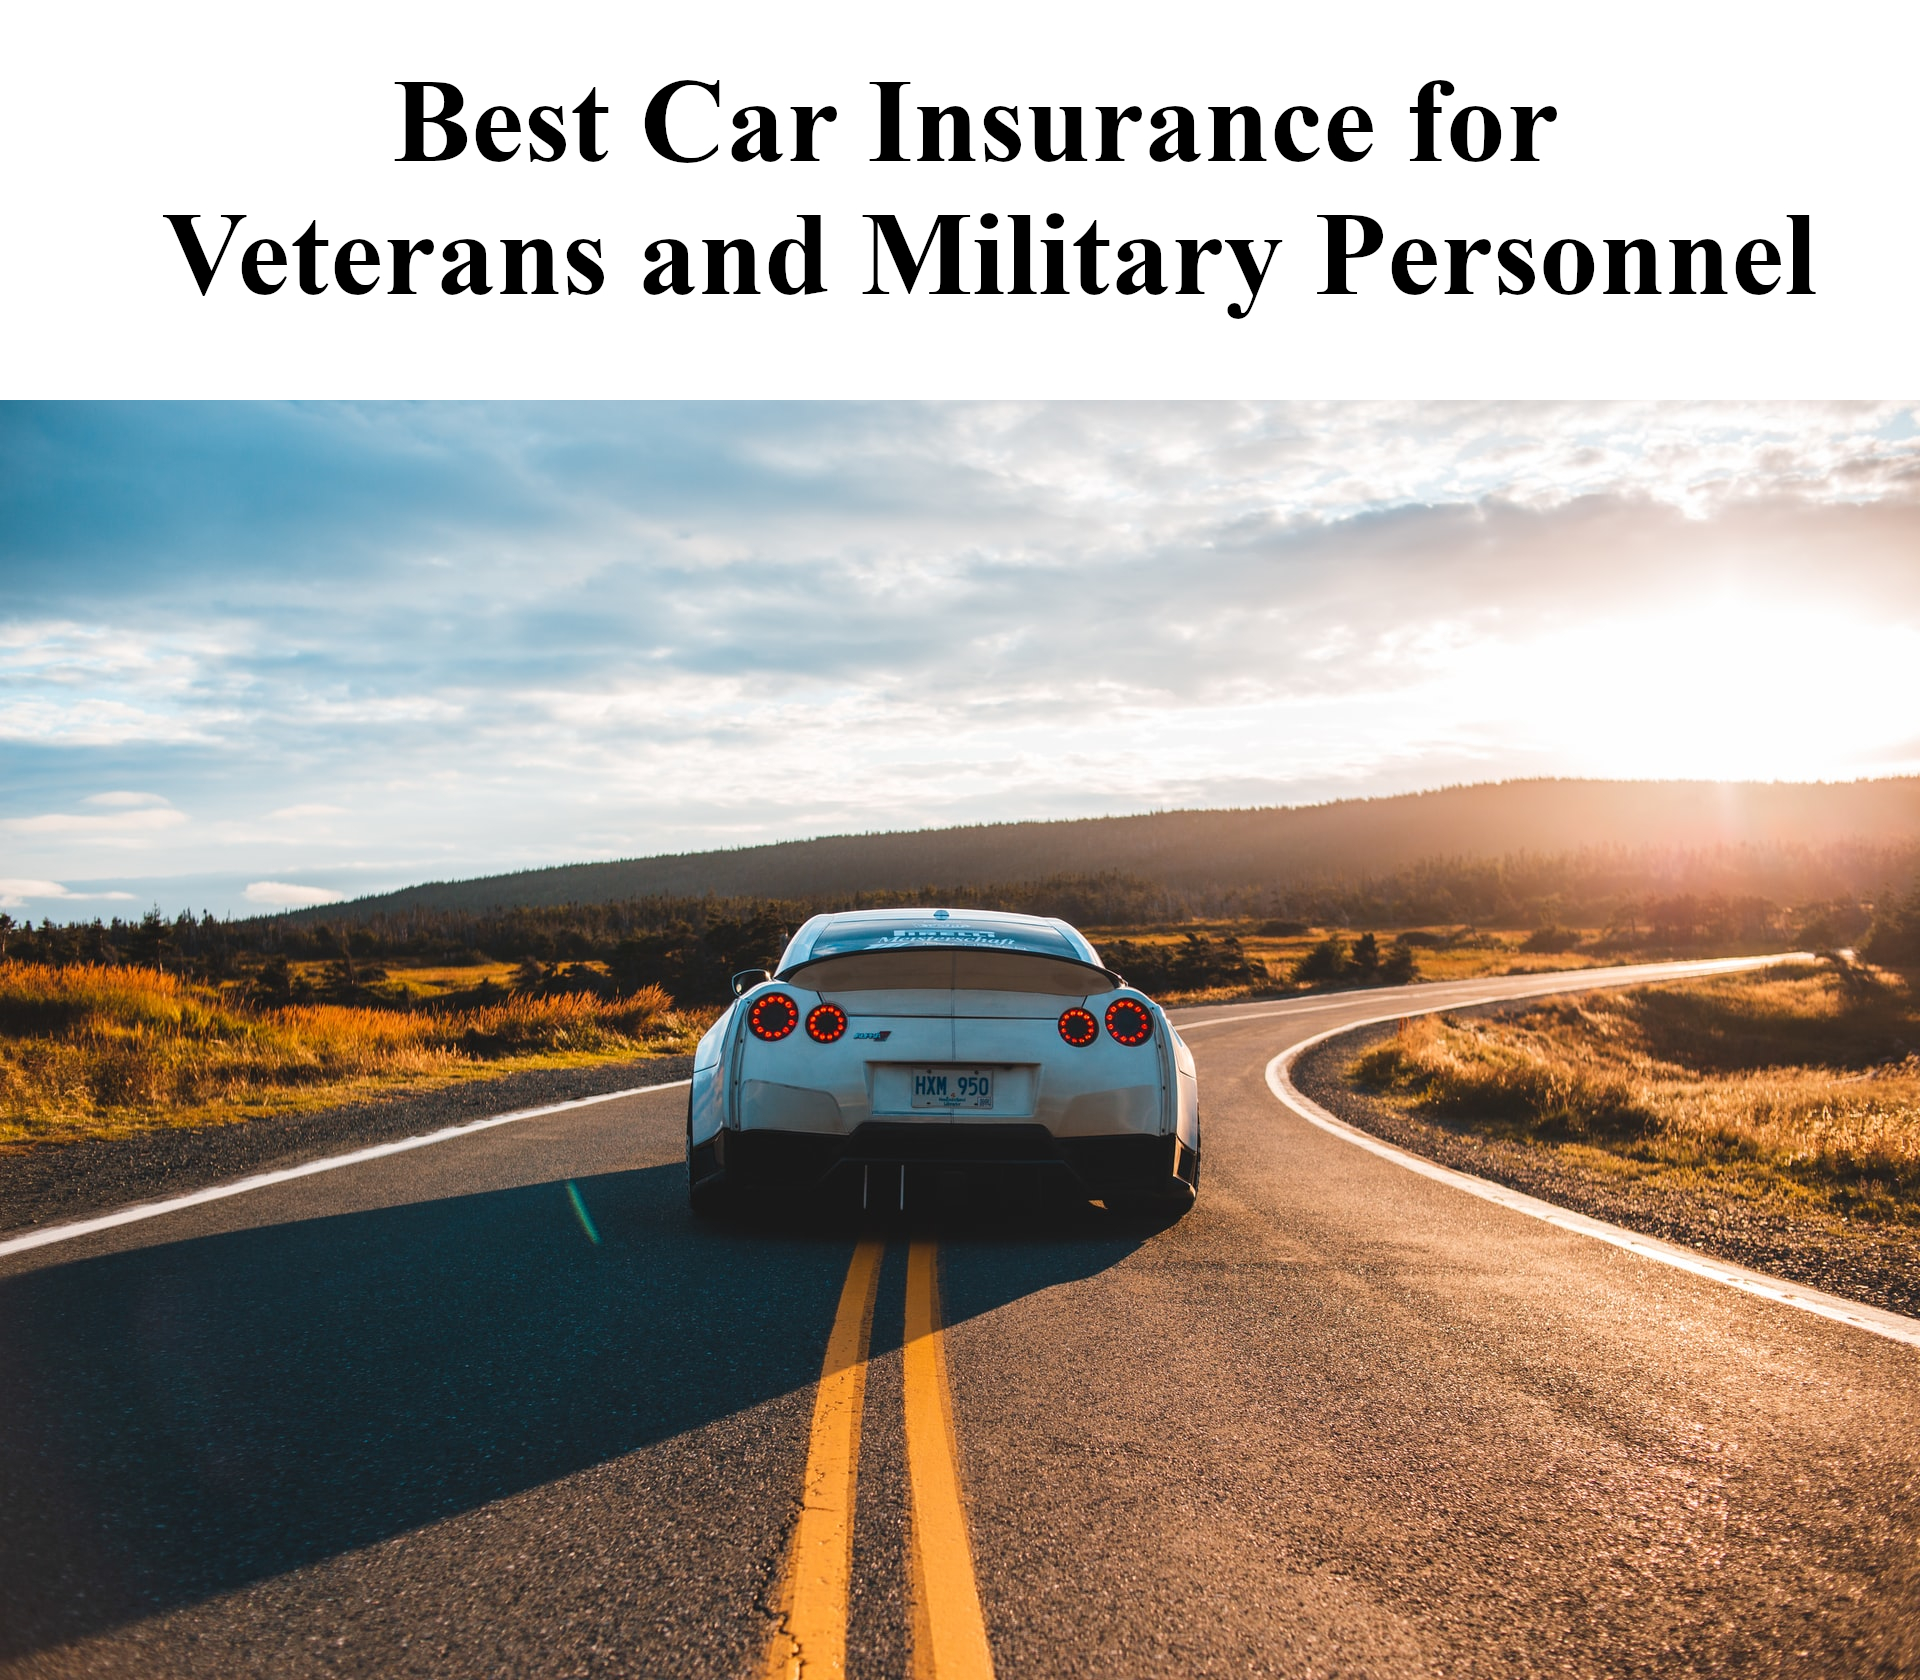 Best Car Insurance for Veterans and Military Personnel